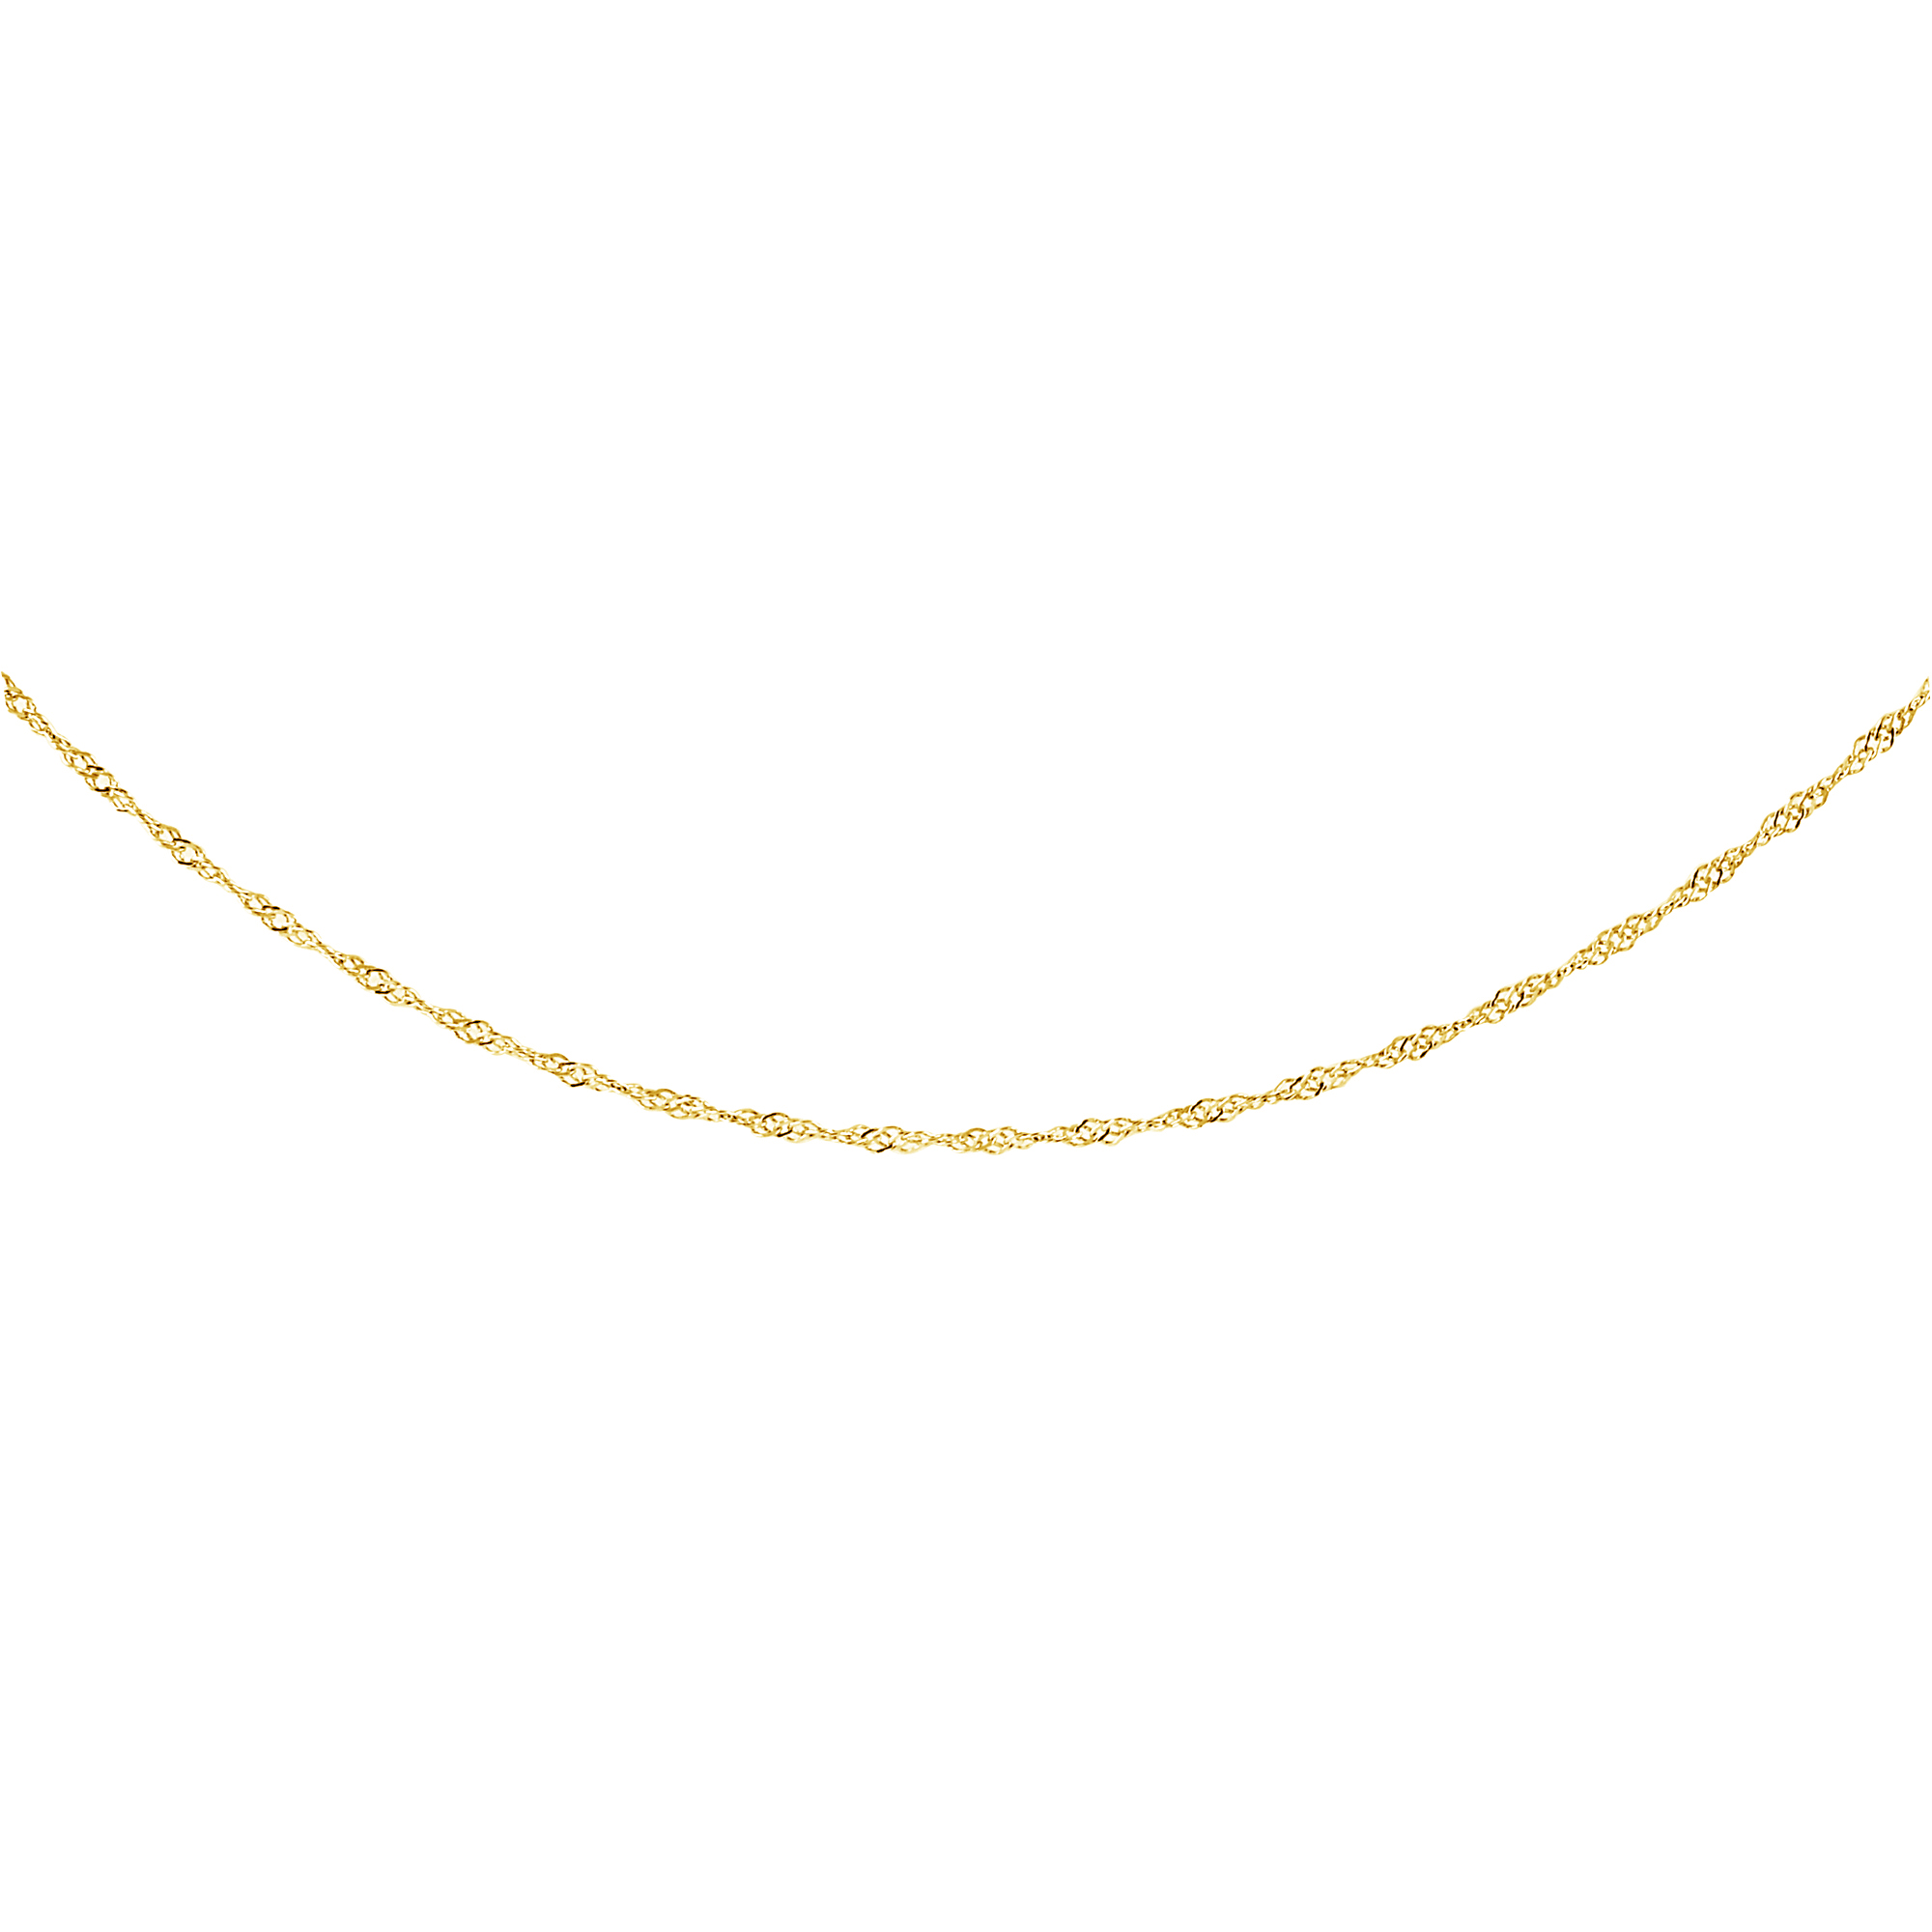 20'' Singapore chain for women - 10K yellow gold